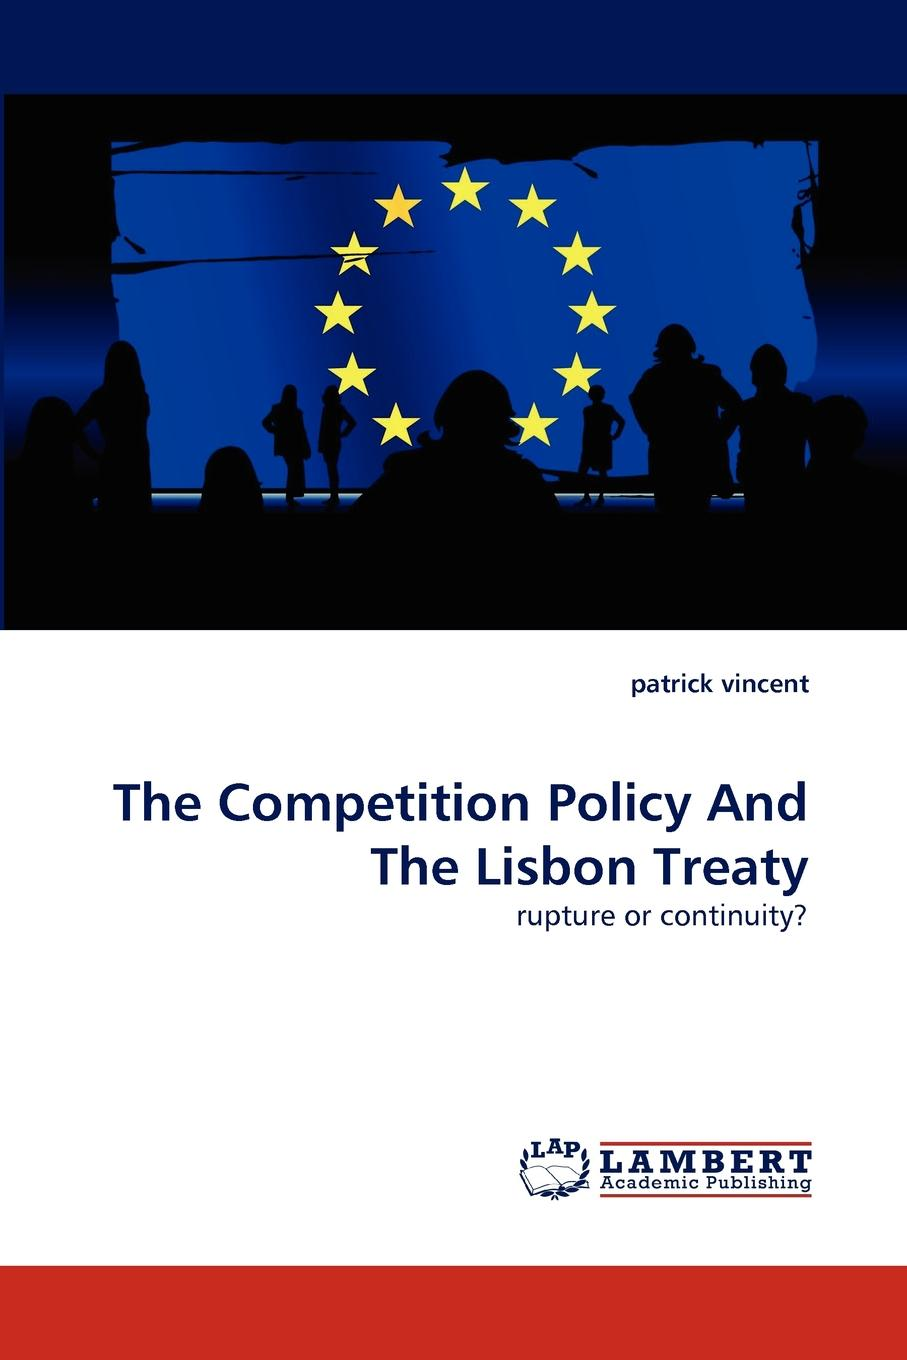 patrick vincent The Competition Policy And Lisbon Treaty